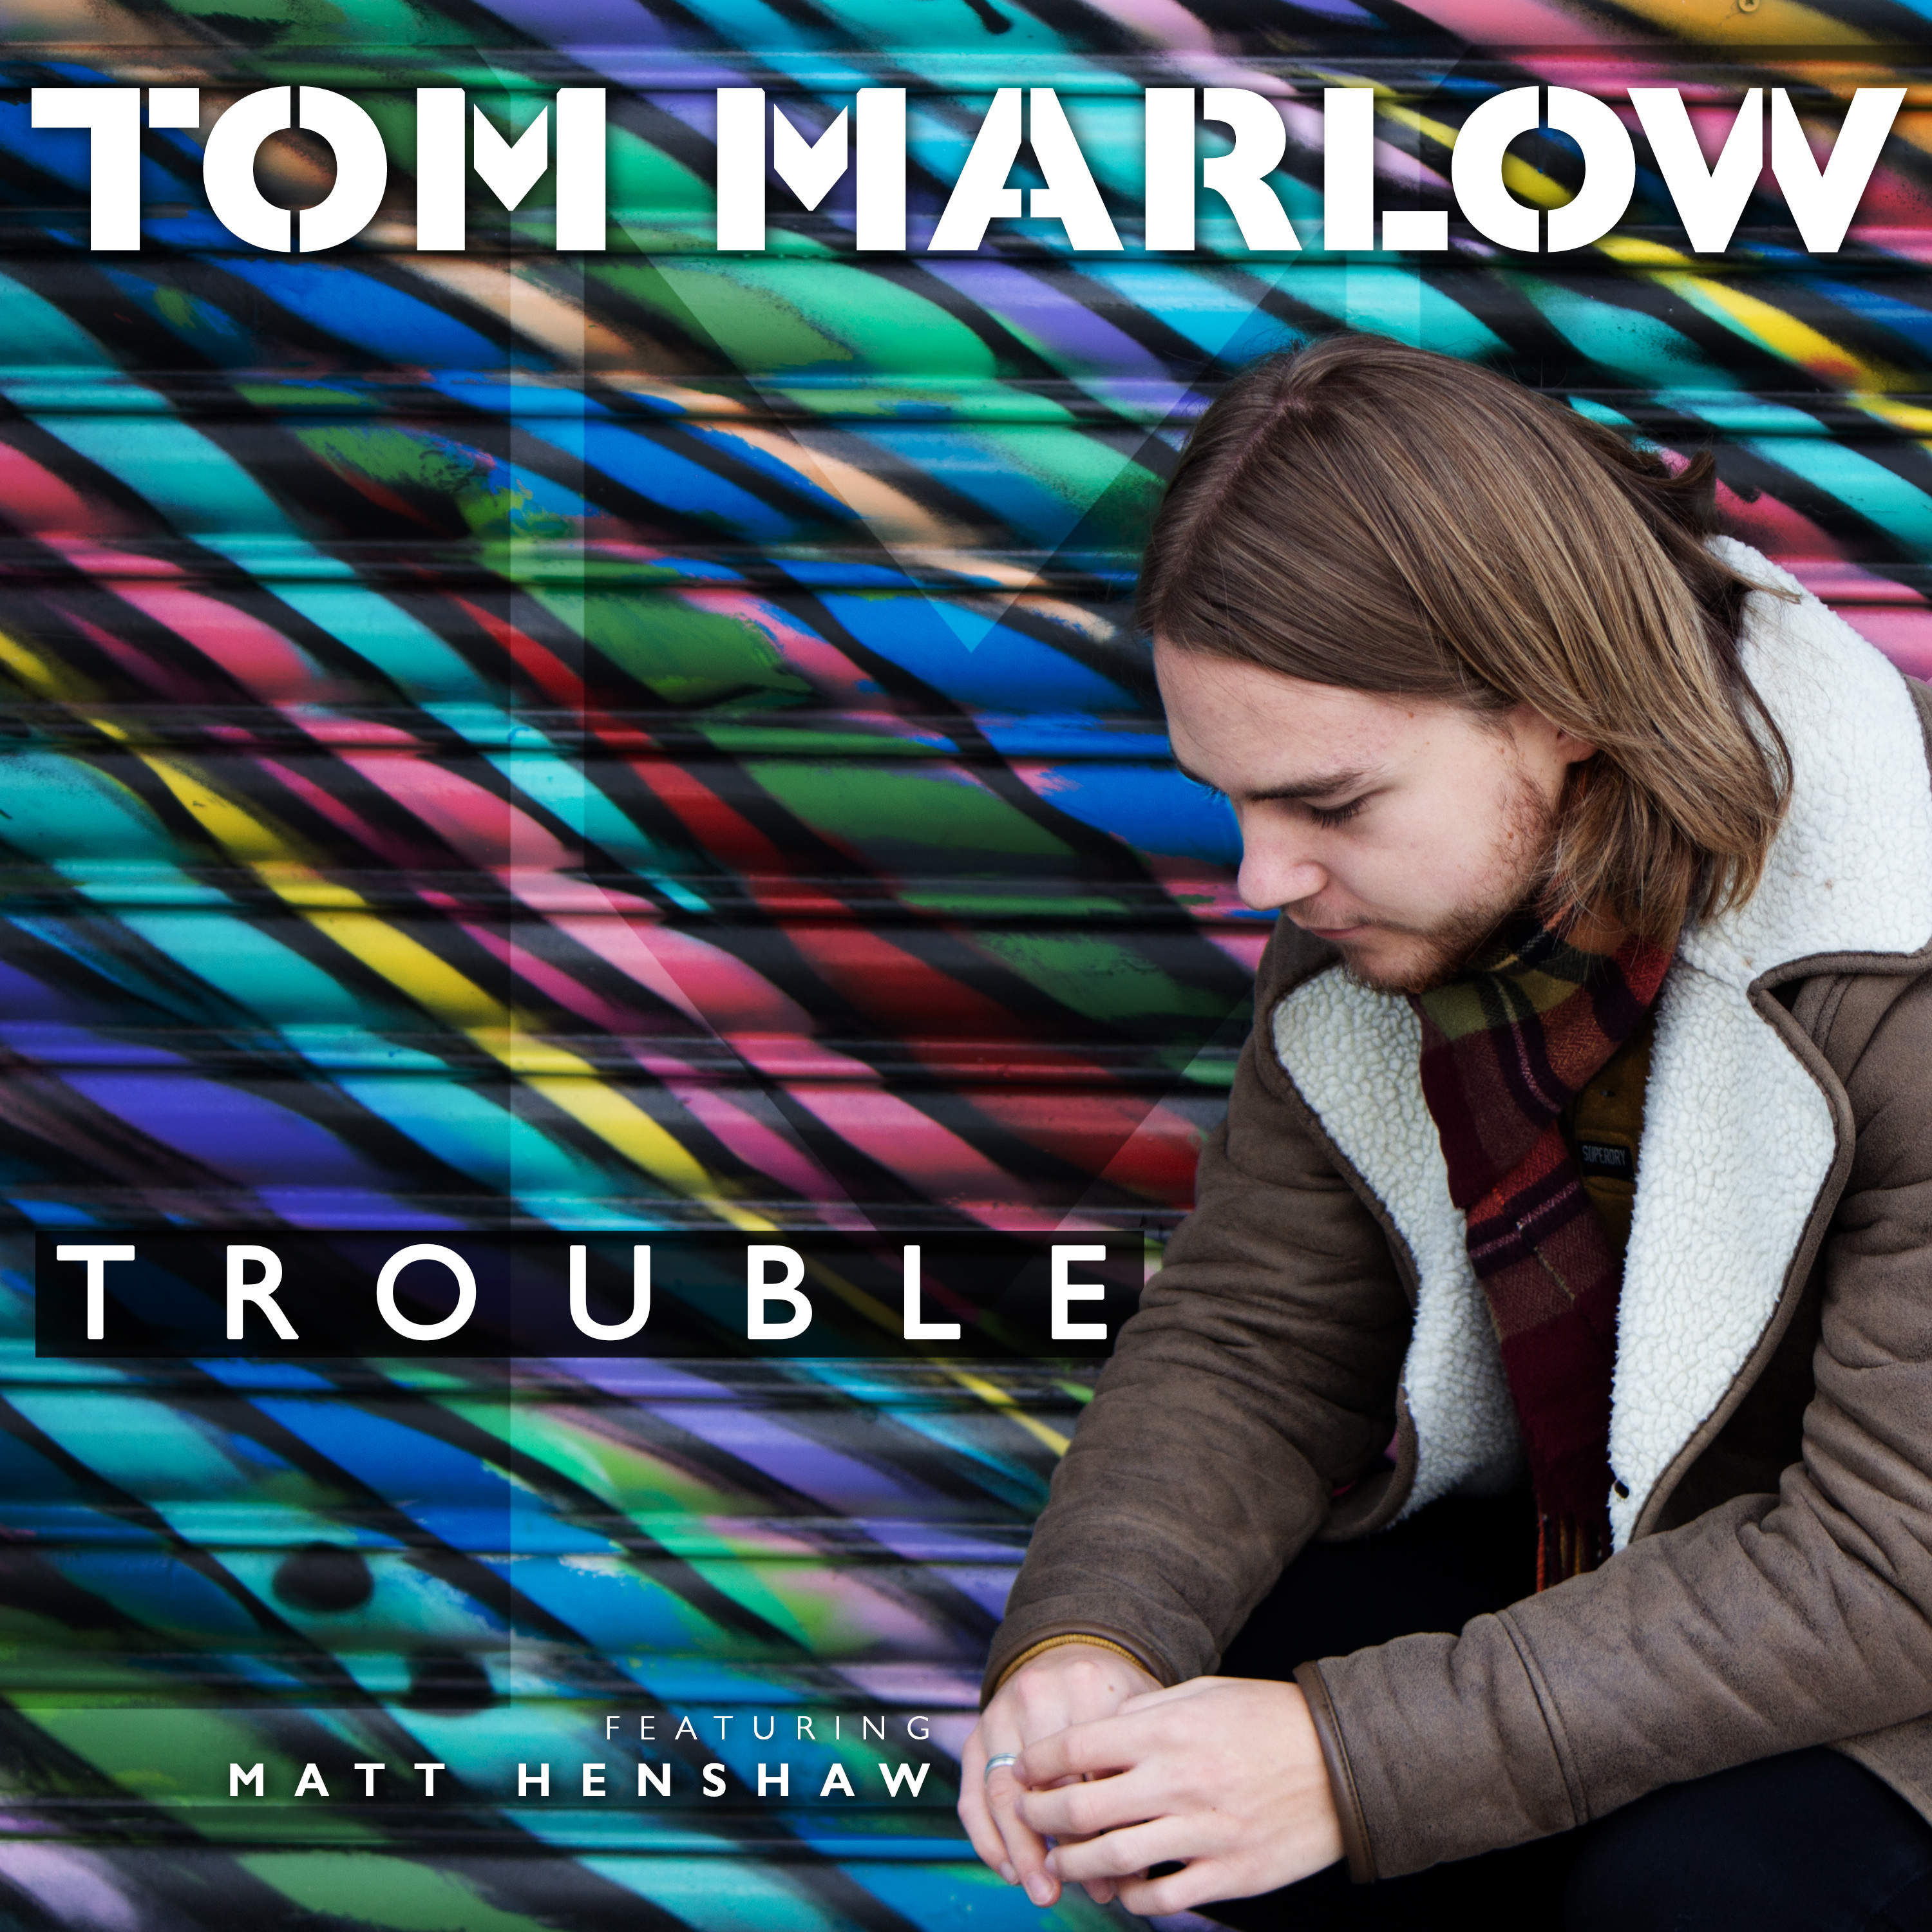 Tom Marlow- Trouble ft. Matt Henshaw coming 23rd February!